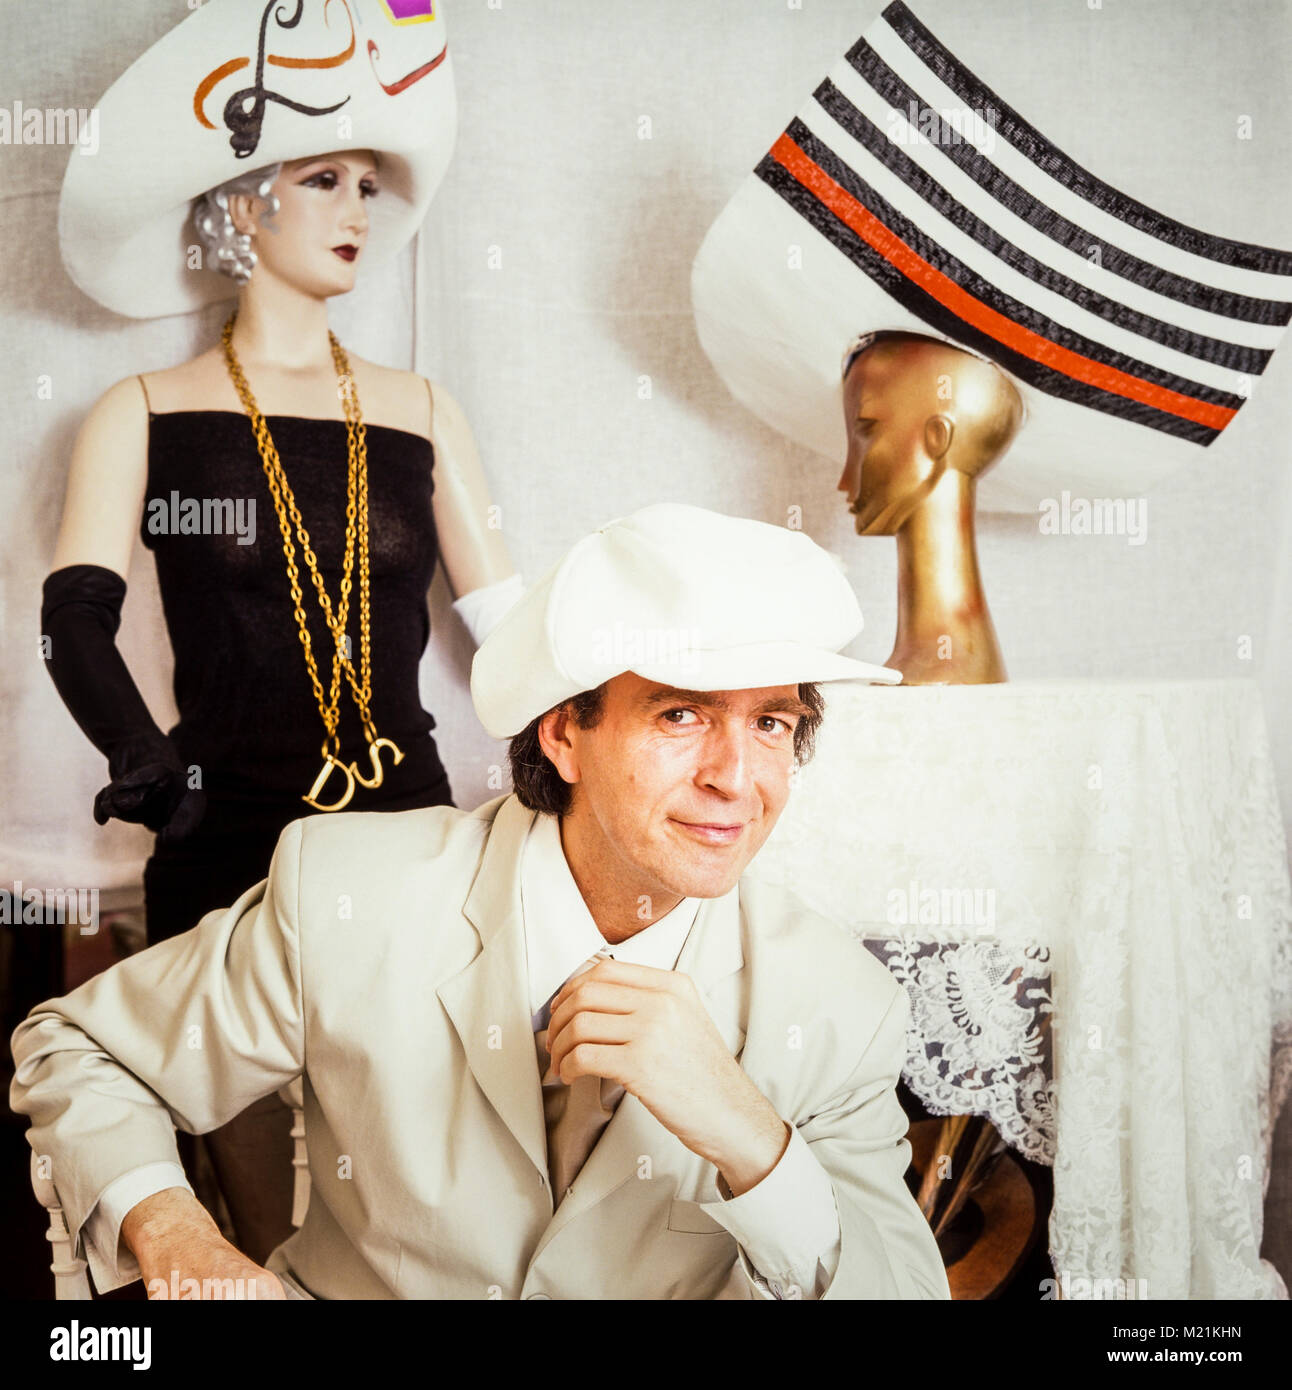 509fae04fbd5da David Shilling milliner, fashion, hat designer, synonymous with designing  extravagant hats and clothing displayed on Ladies' Day at Royal Ascot, ...